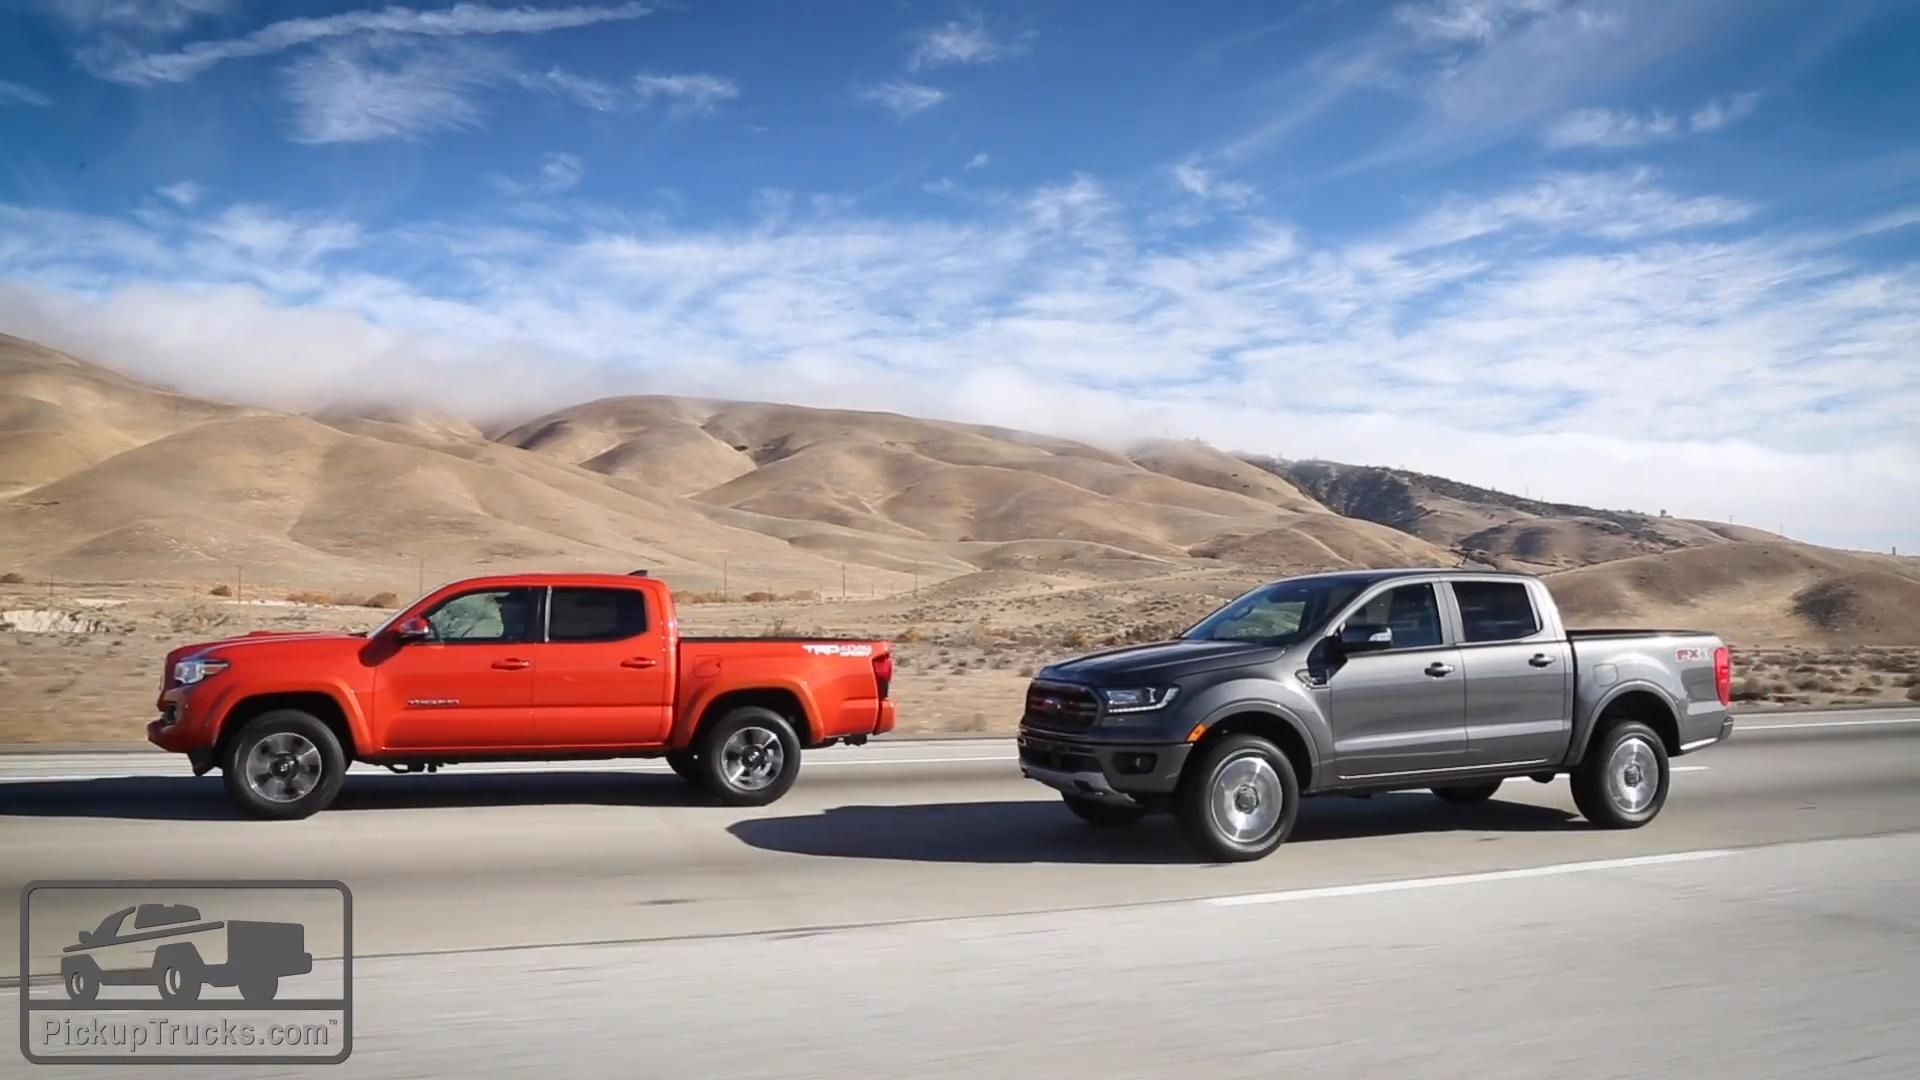 Video: 2019 Ford Ranger vs. 2018 Toyota Tacoma — Pickuptrucks.com